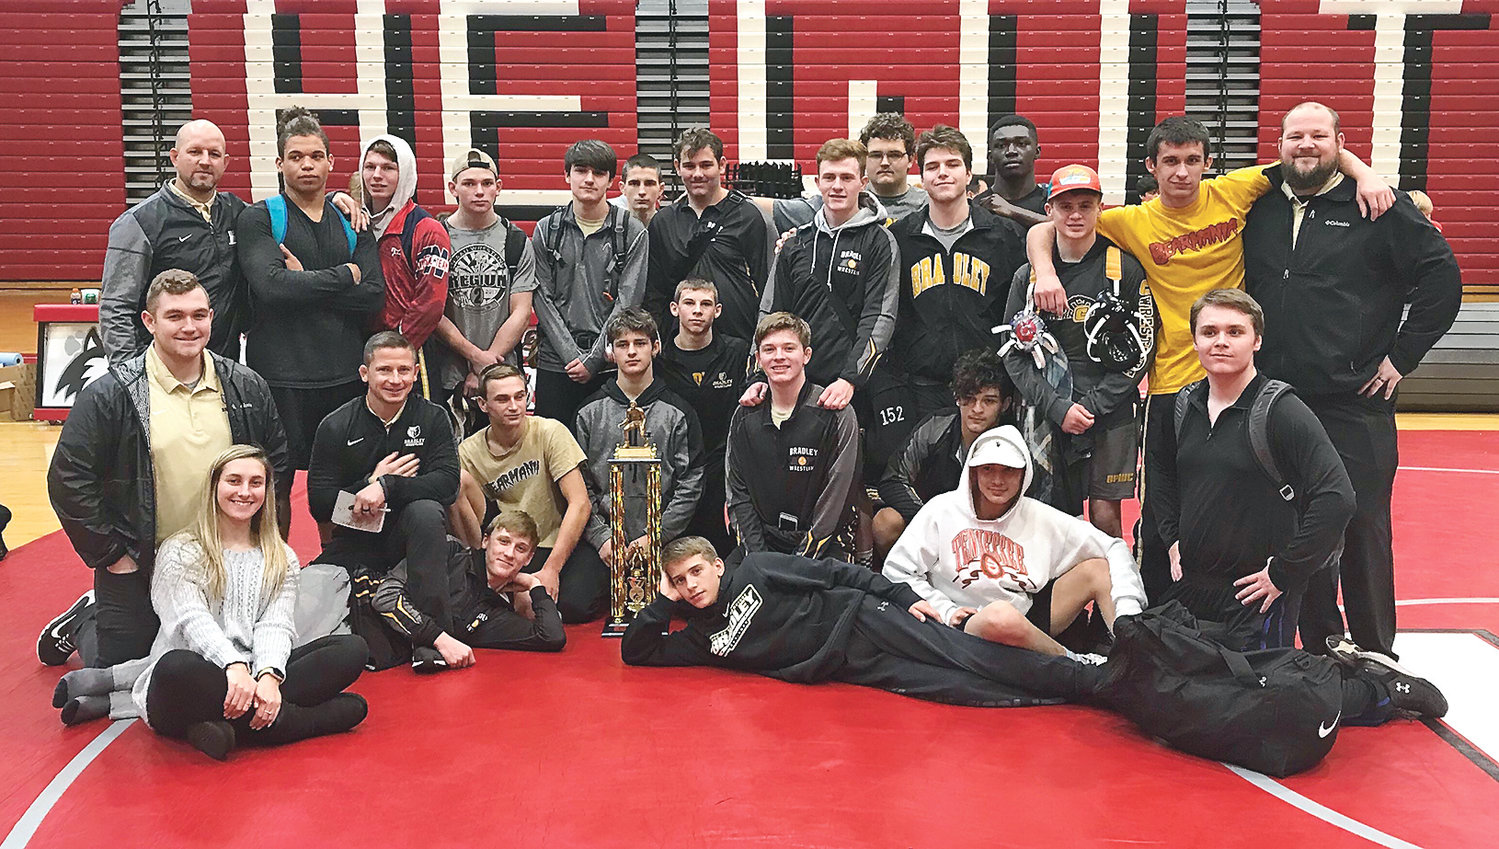 BRADLEY CENTRAL traveled to the Birmingham, Ala., area Wednesday and defeated a trio of Alabama state champs on their way to winning the Hewitt-Trussville Duals. The Bears won five straight matches to kick off their mat season.